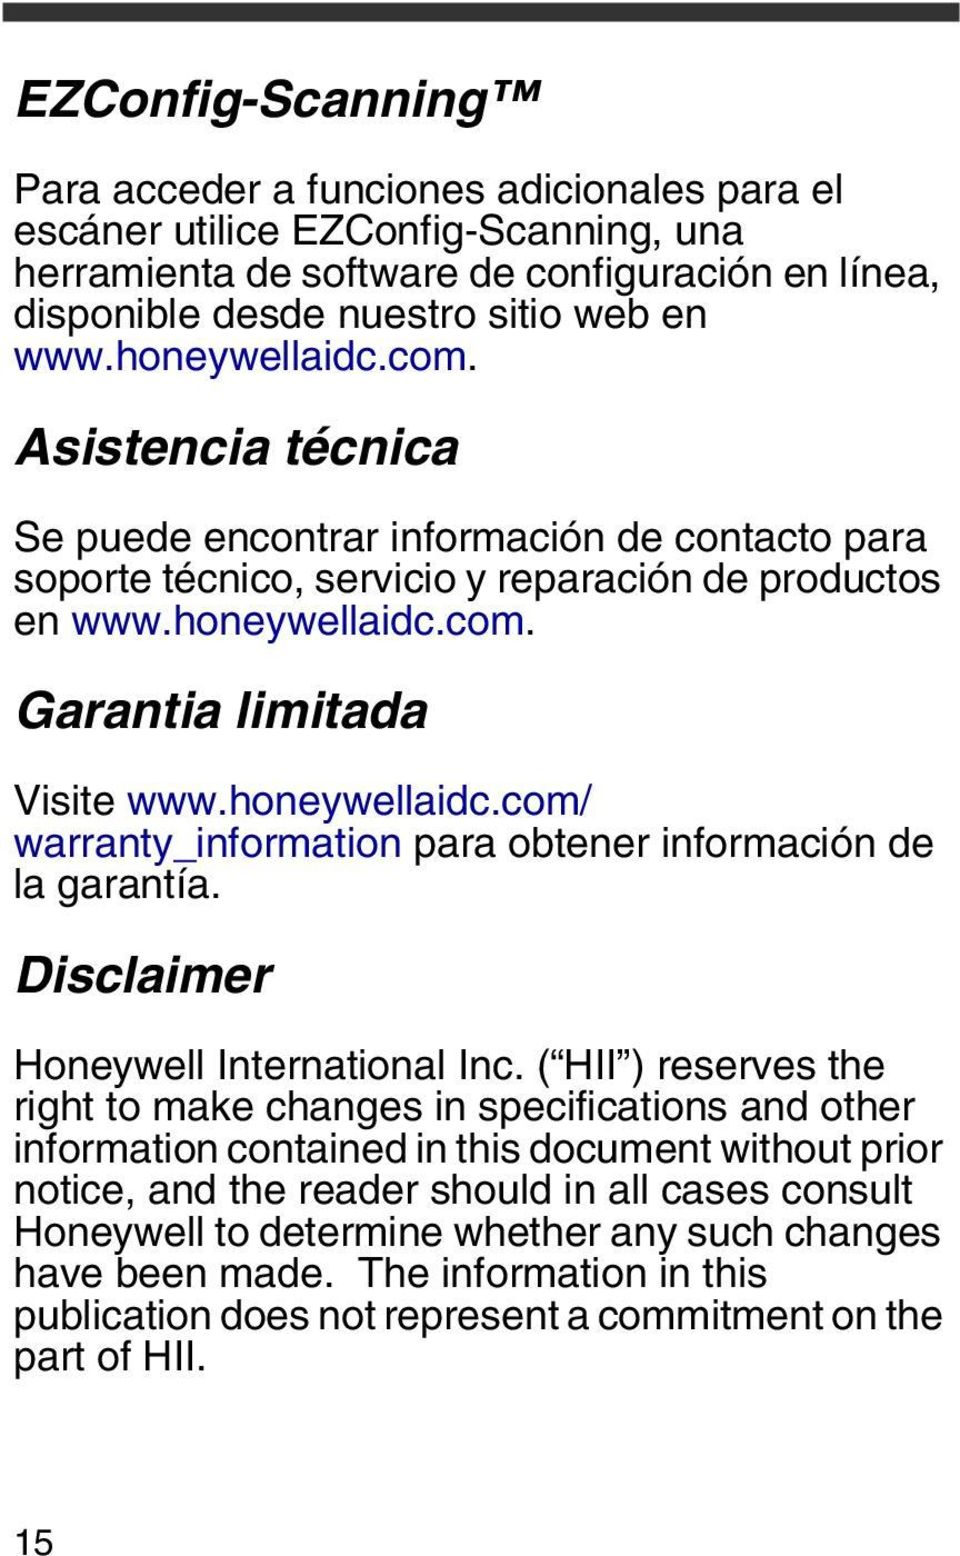 honeywellaidc.com/ warranty_information para obtener información de la garantía. Disclaimer Honeywell International Inc.